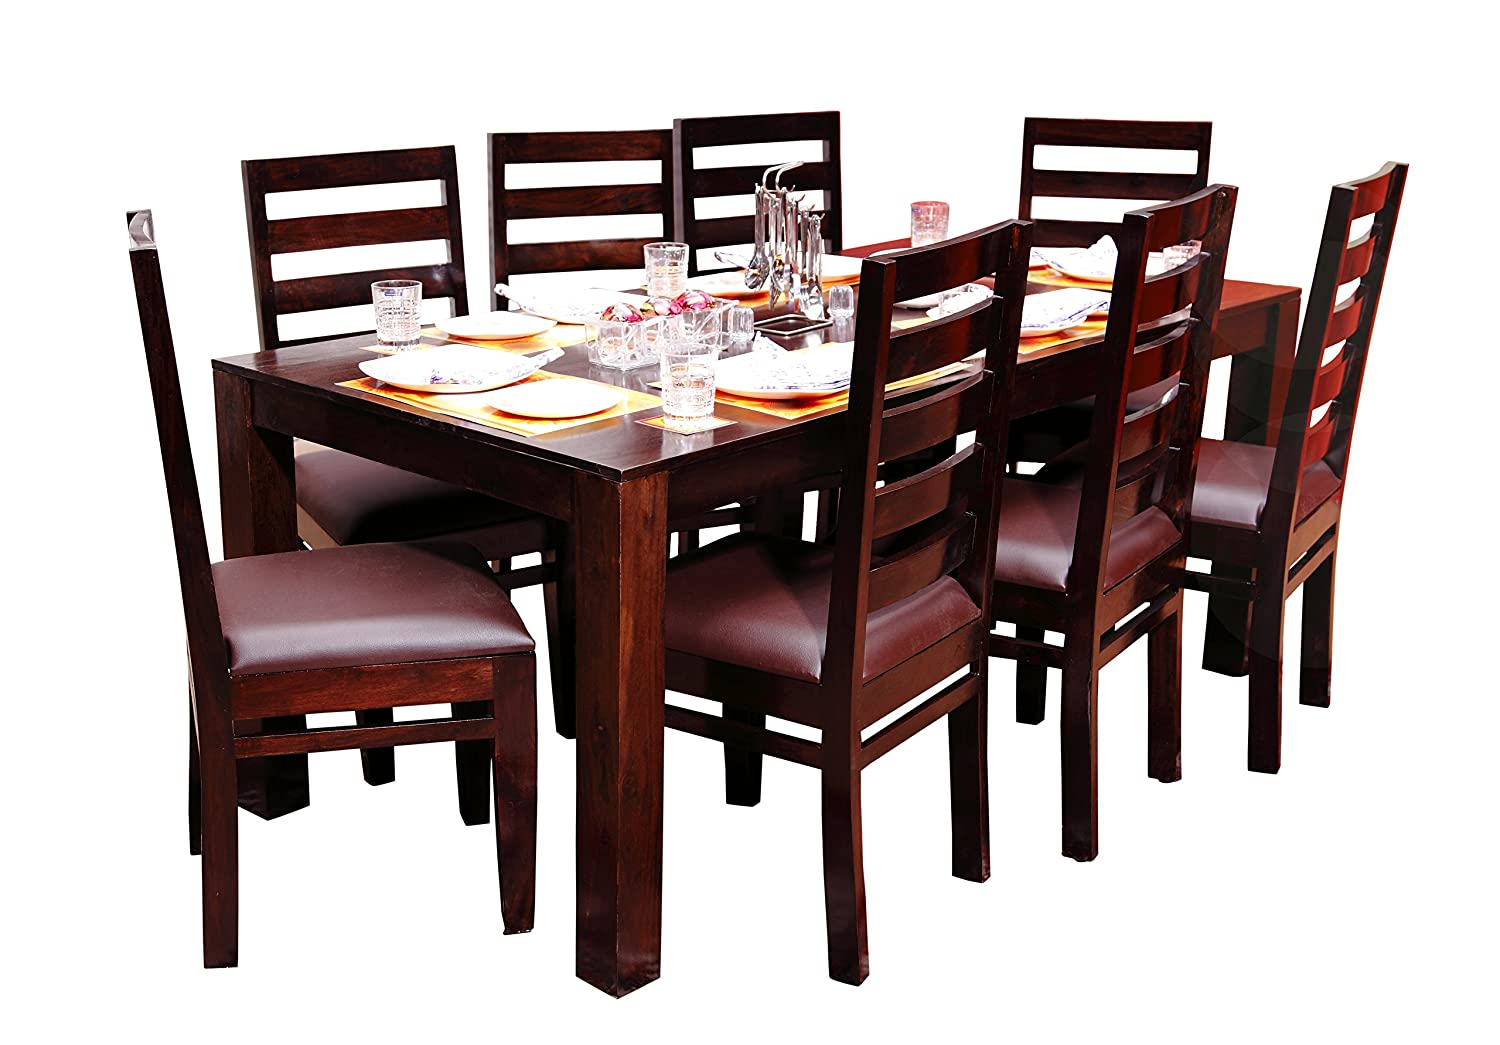 8 Chair And Table Modern Wooden Dining Table Set Solid Seesham Wood Amazon In Home Kitchen